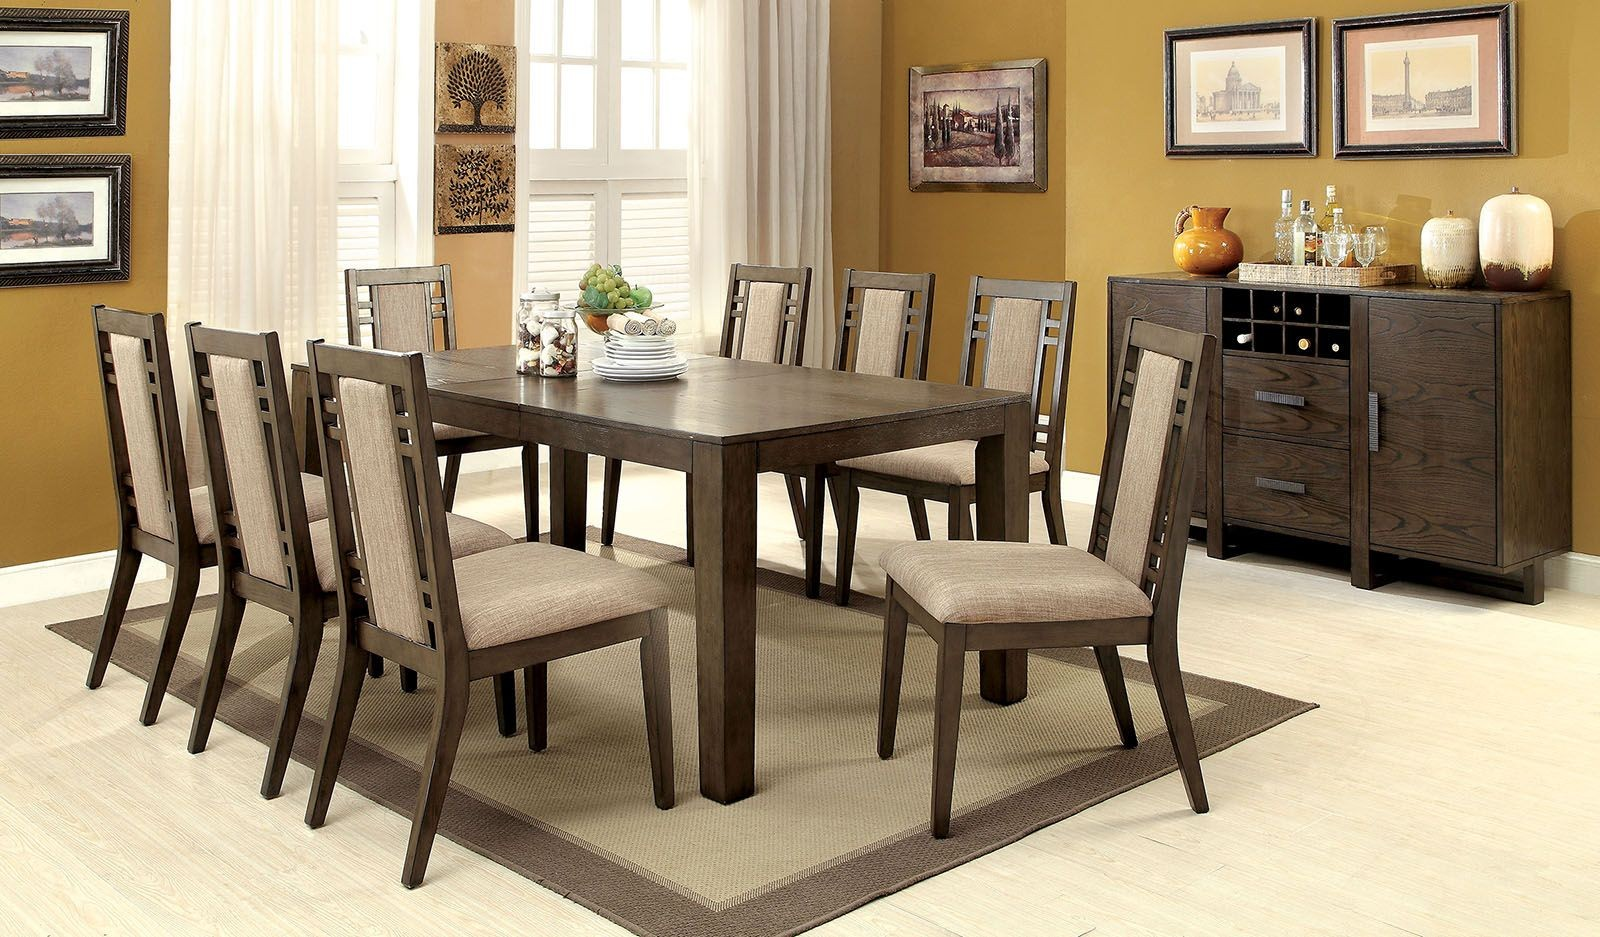 Eris I Weathered Gray Extendable Rectangular Dining Room Set CM3213T Furnit